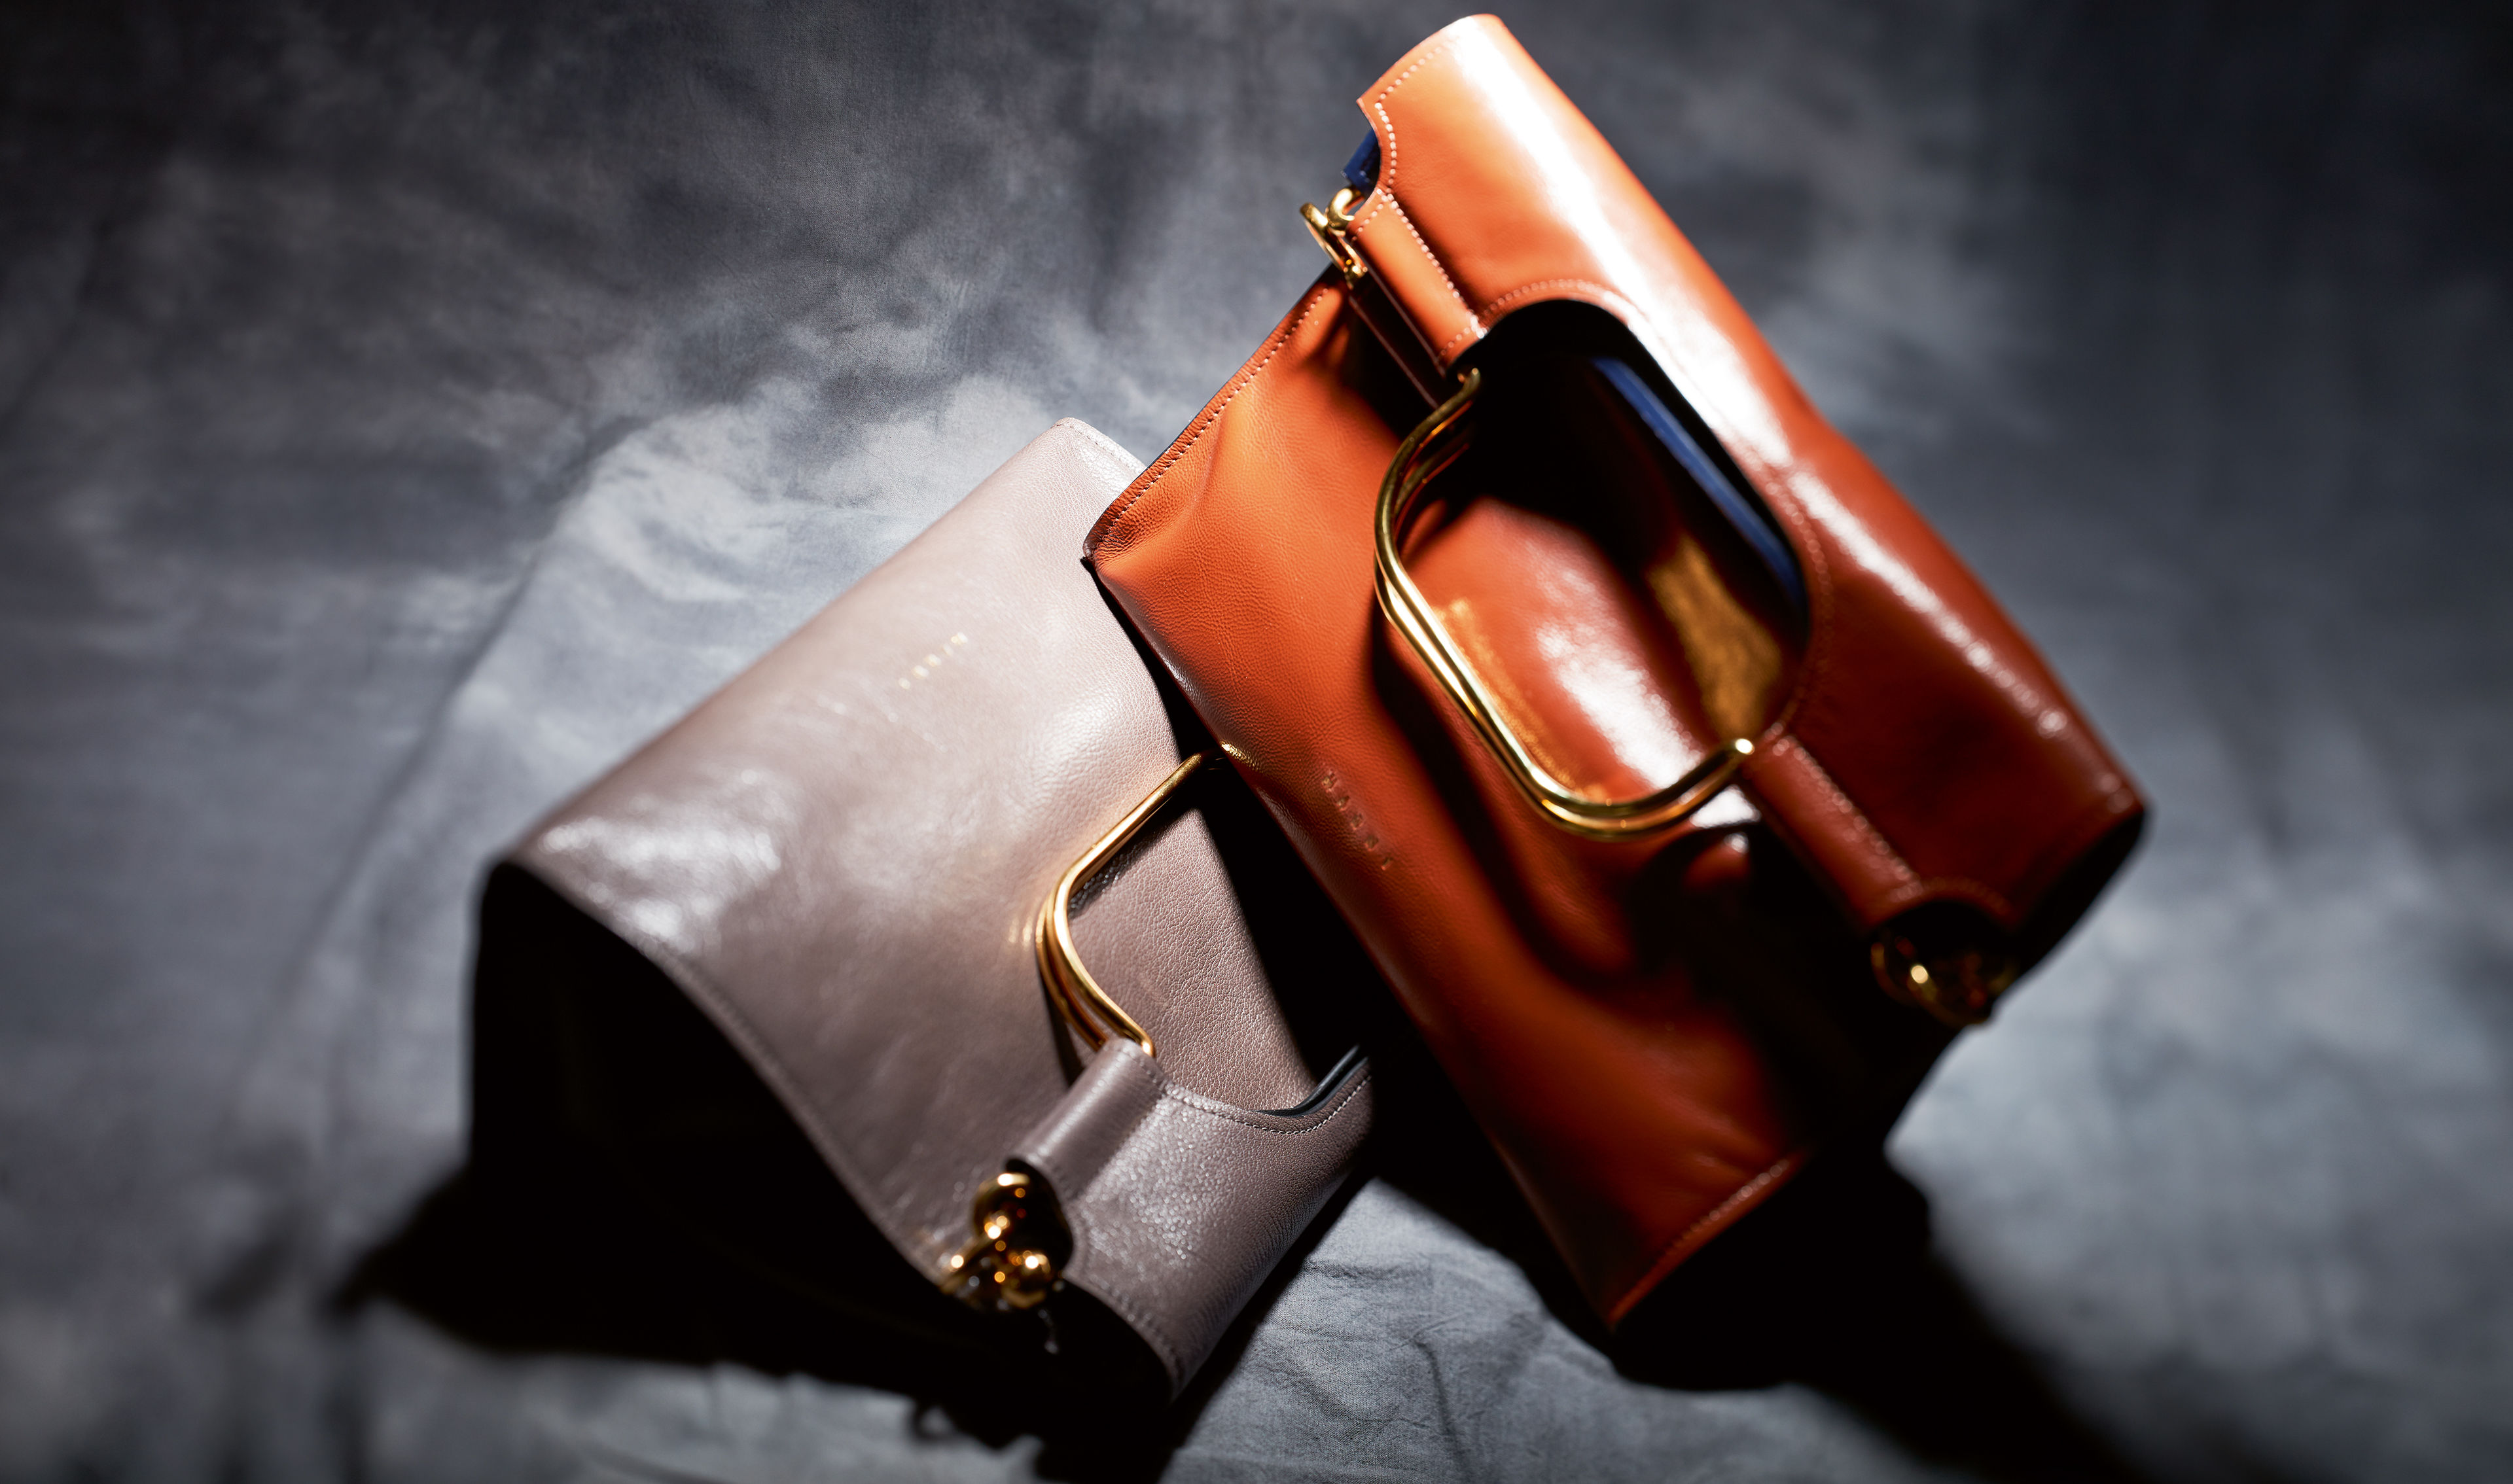 Marcel bag in brown and grey colour variations with golden handle